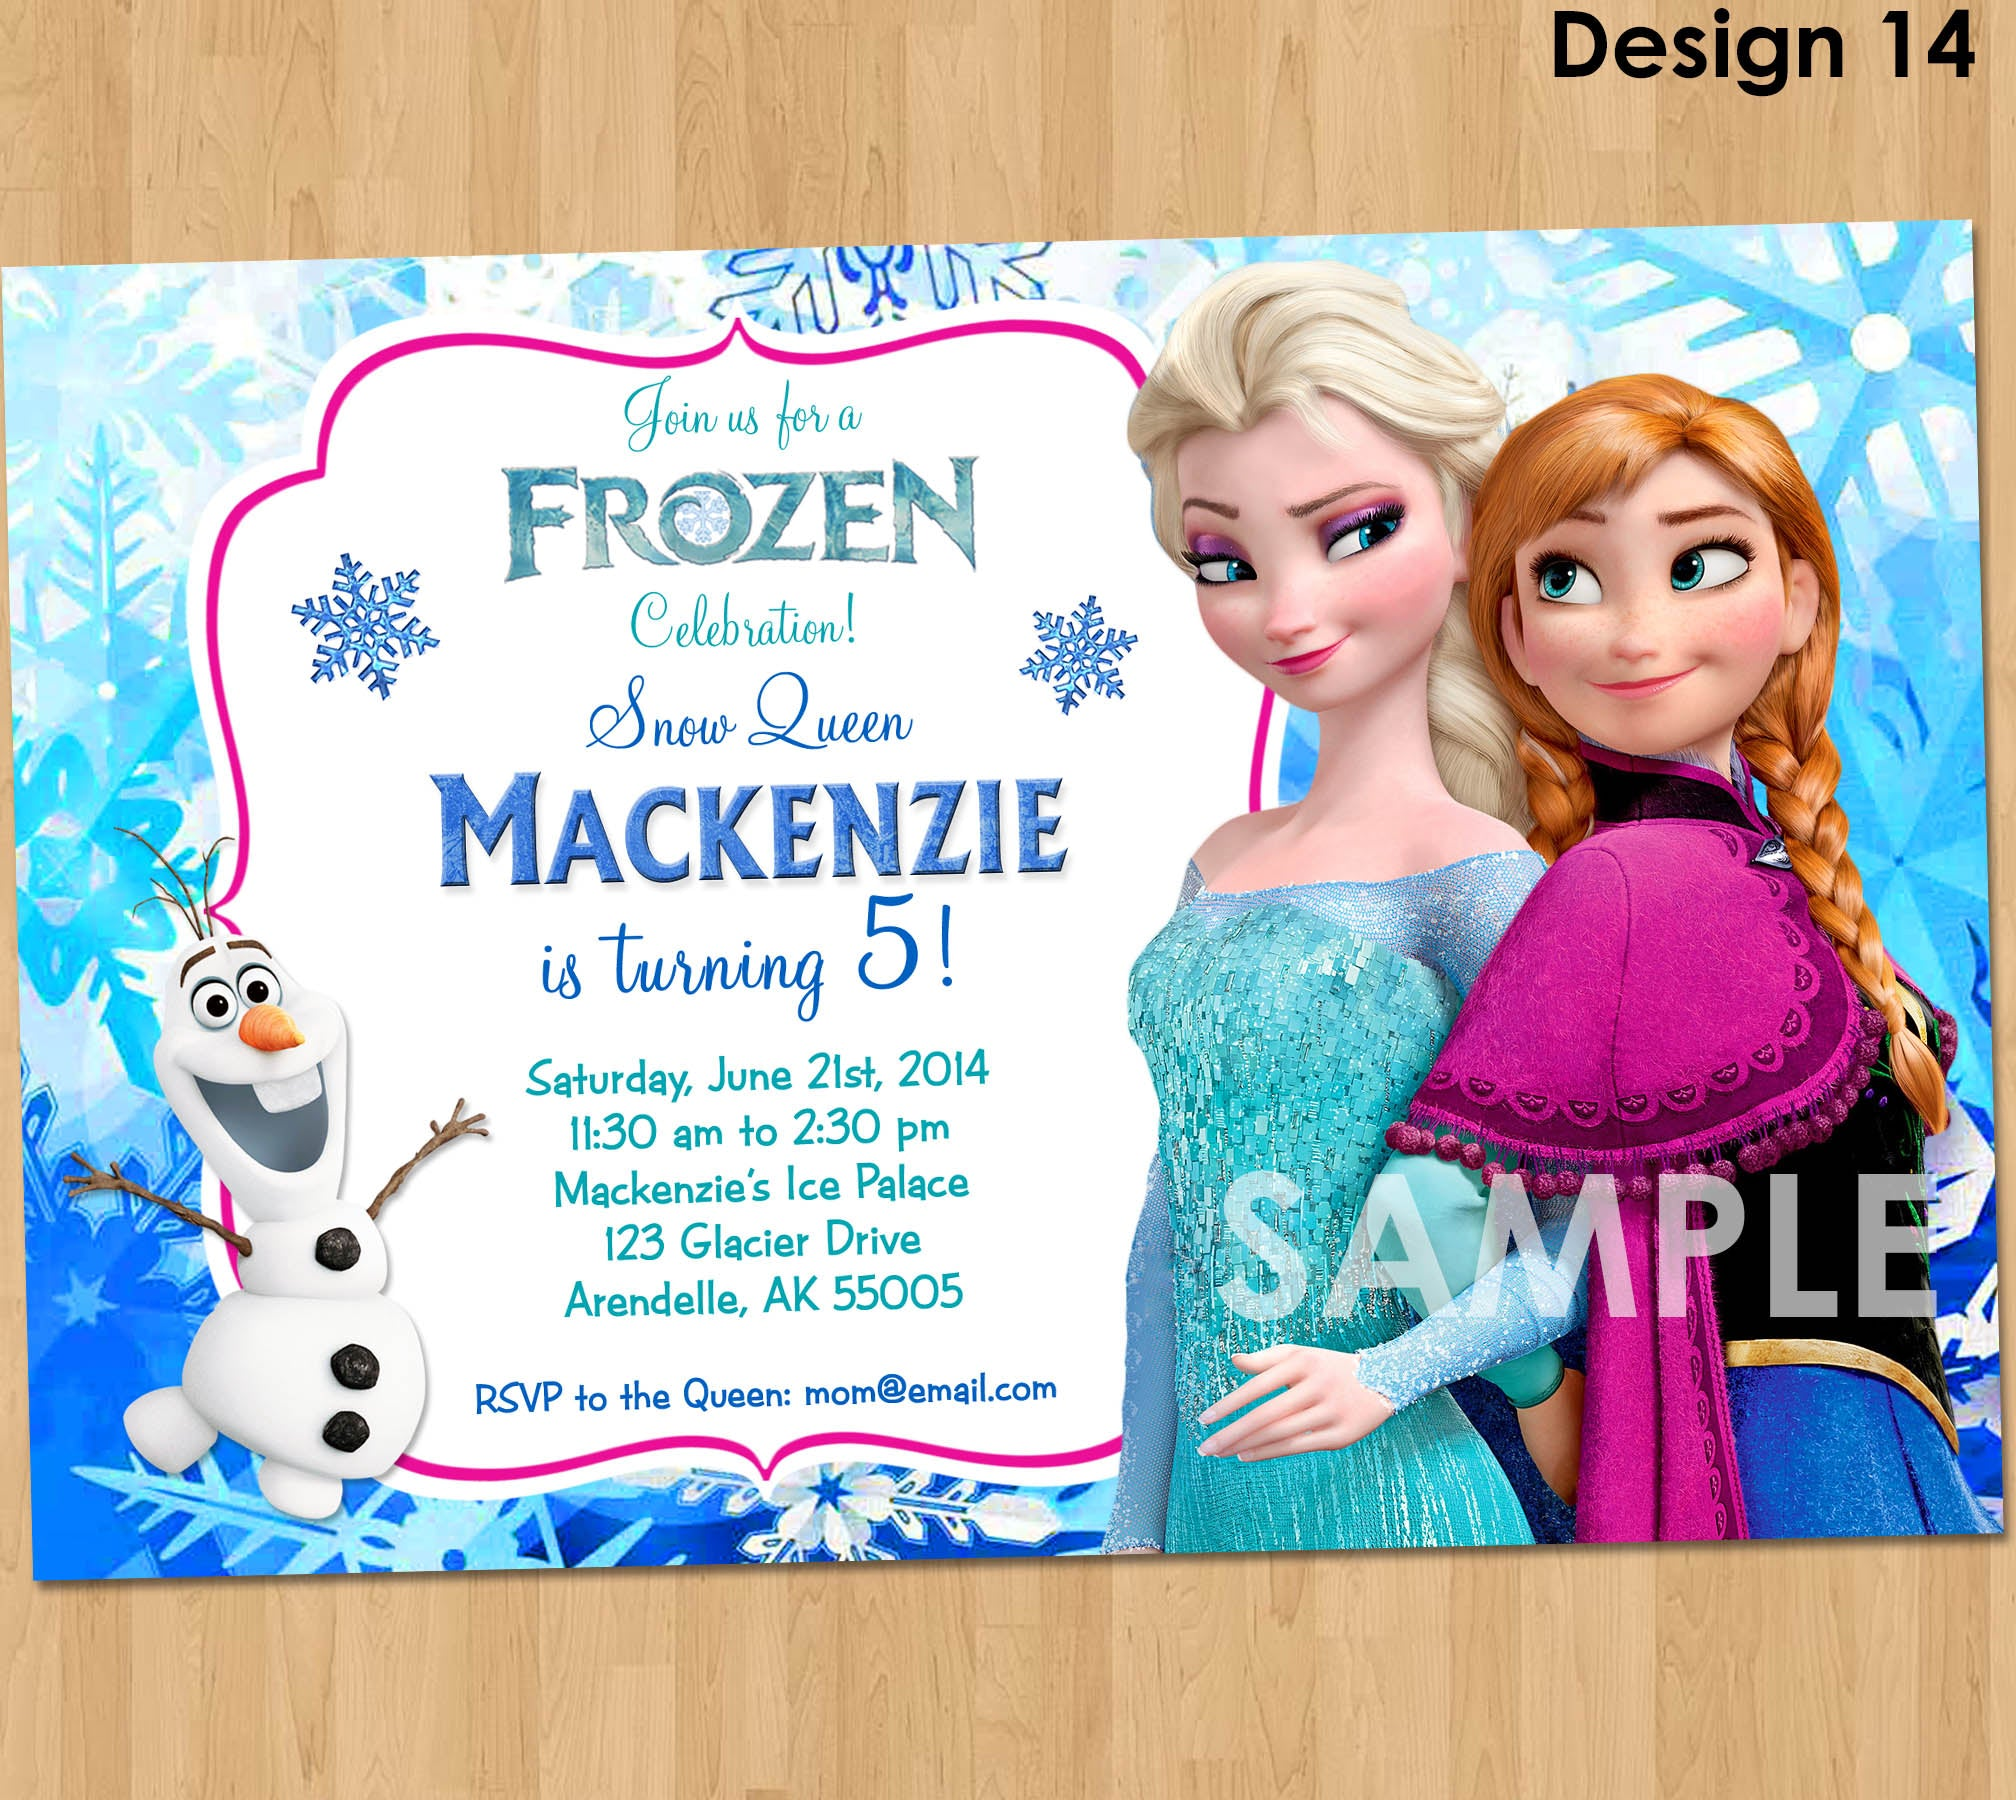 graphic about Printable Frozen Birthday Card named Frozen Invitation - Frozen Birthday Invitation - Disney Frozen Celebration Invitations - Birthday Social gathering Plans Printable Elsa Anna Olaf